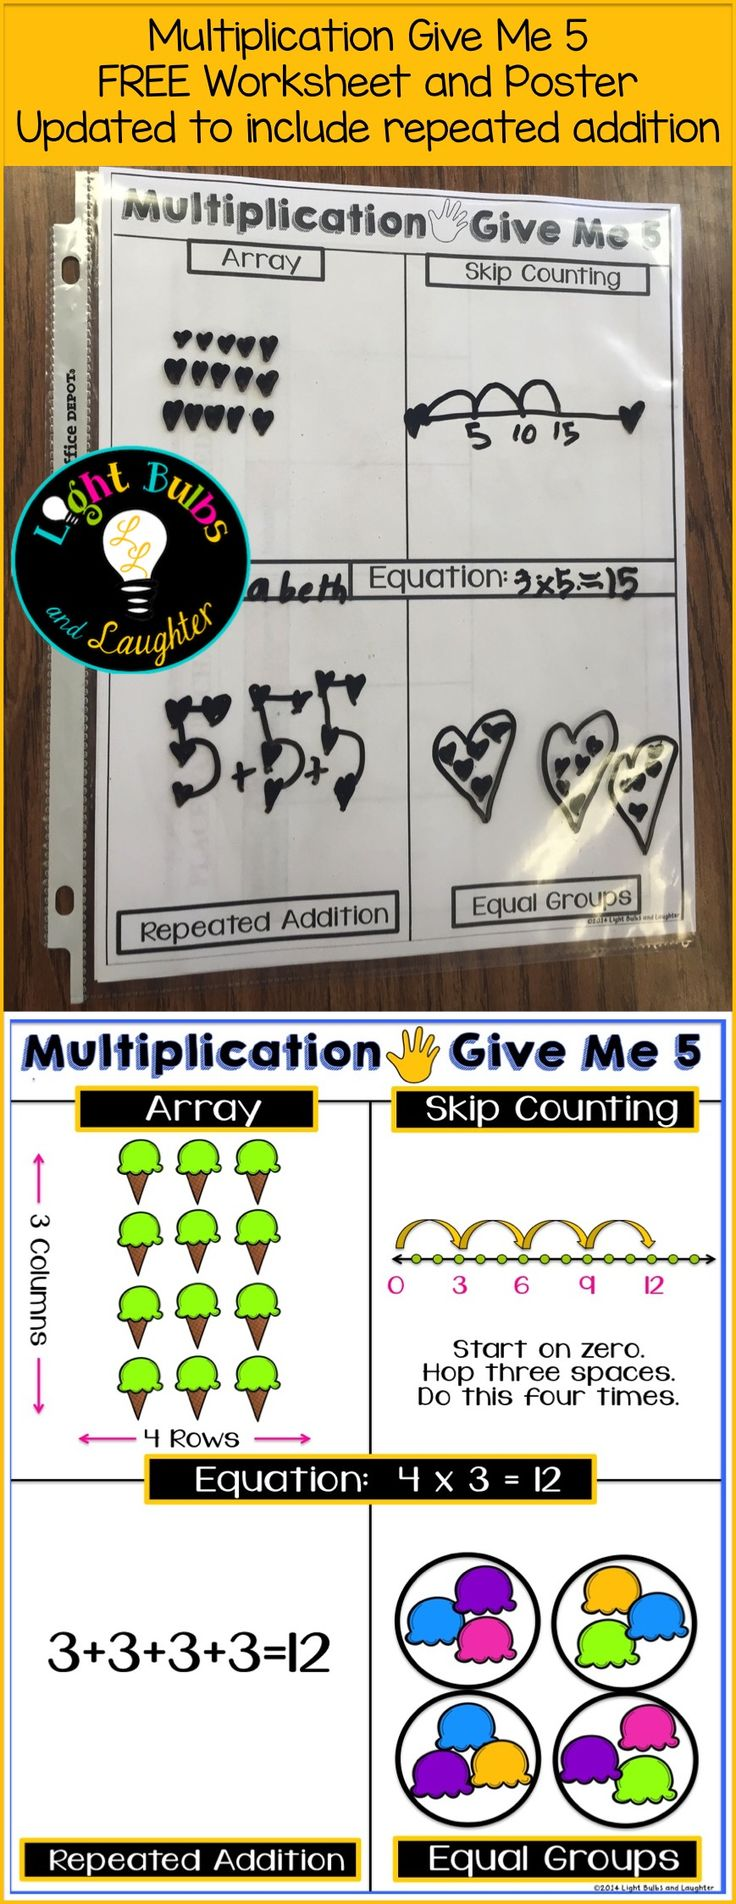 Worksheet How To Teach Multiplication To 3rd Grade 17 best images about 3rd grade multiplication on pinterest free activities equal groups visualize facts help addition